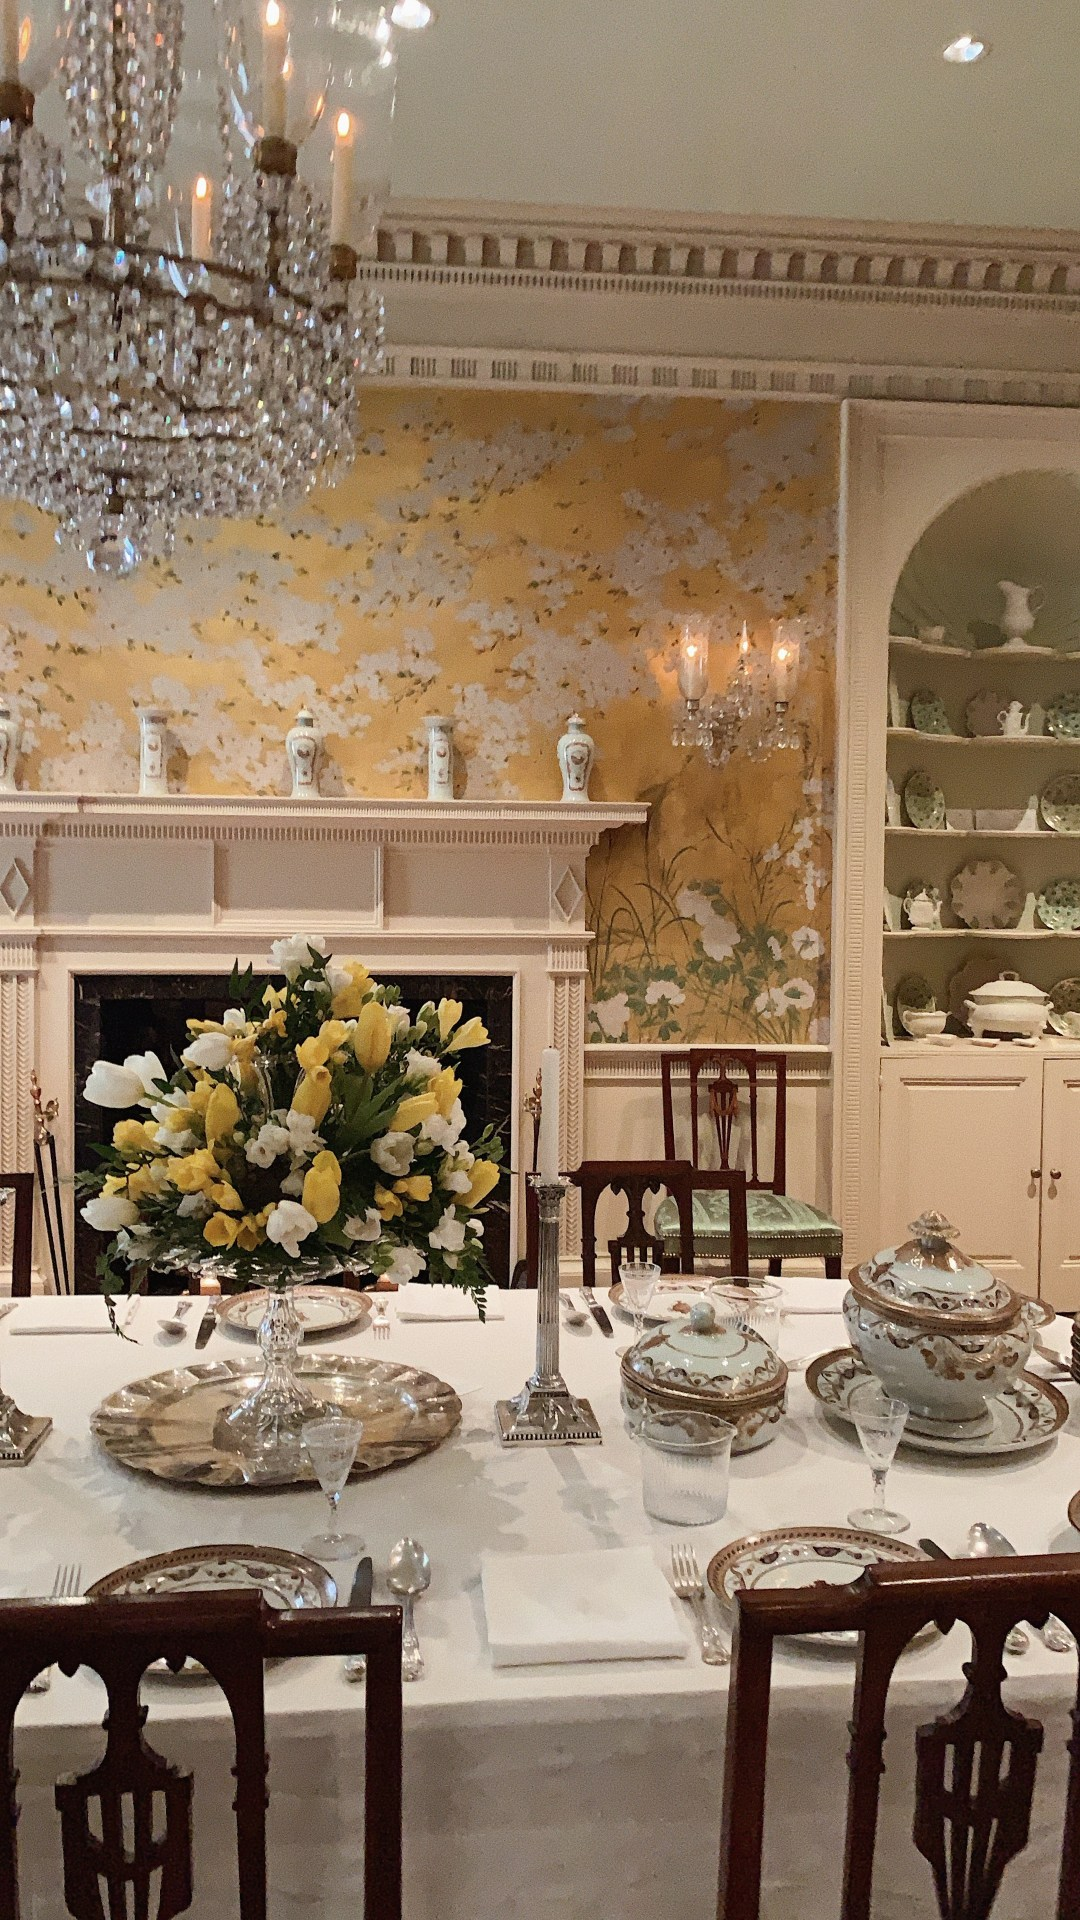 Houston's Bayou Bend Collections home